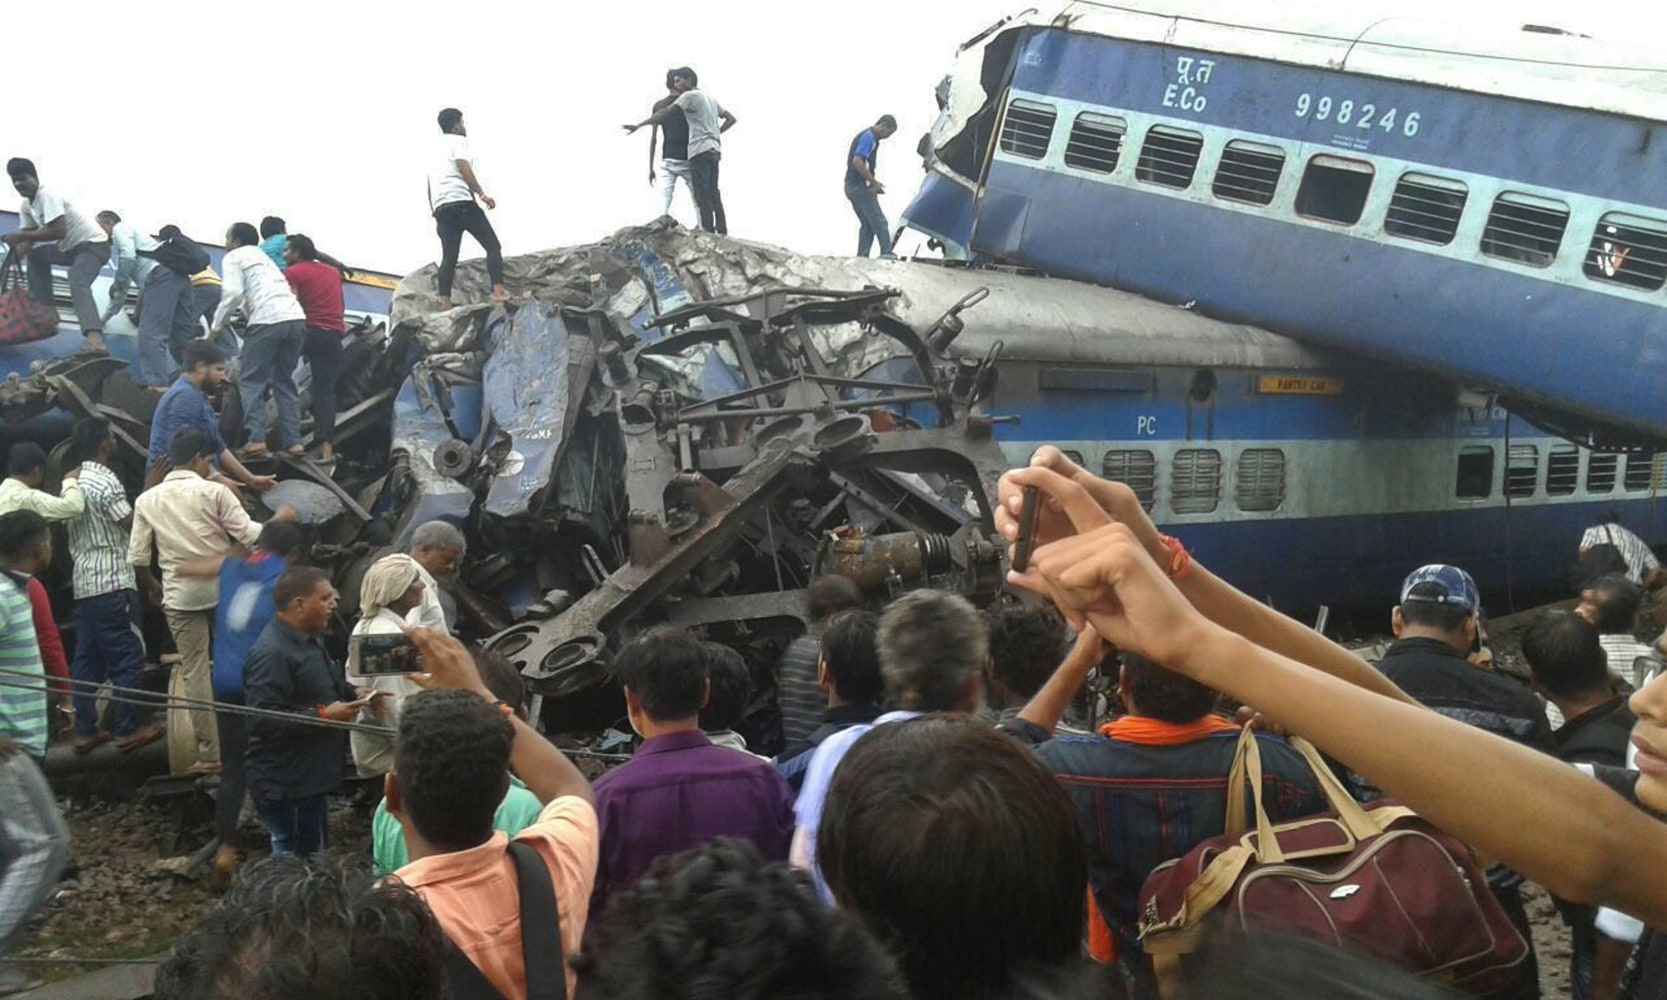 At Least Ten Killed, Dozens Injured in India Train Derail